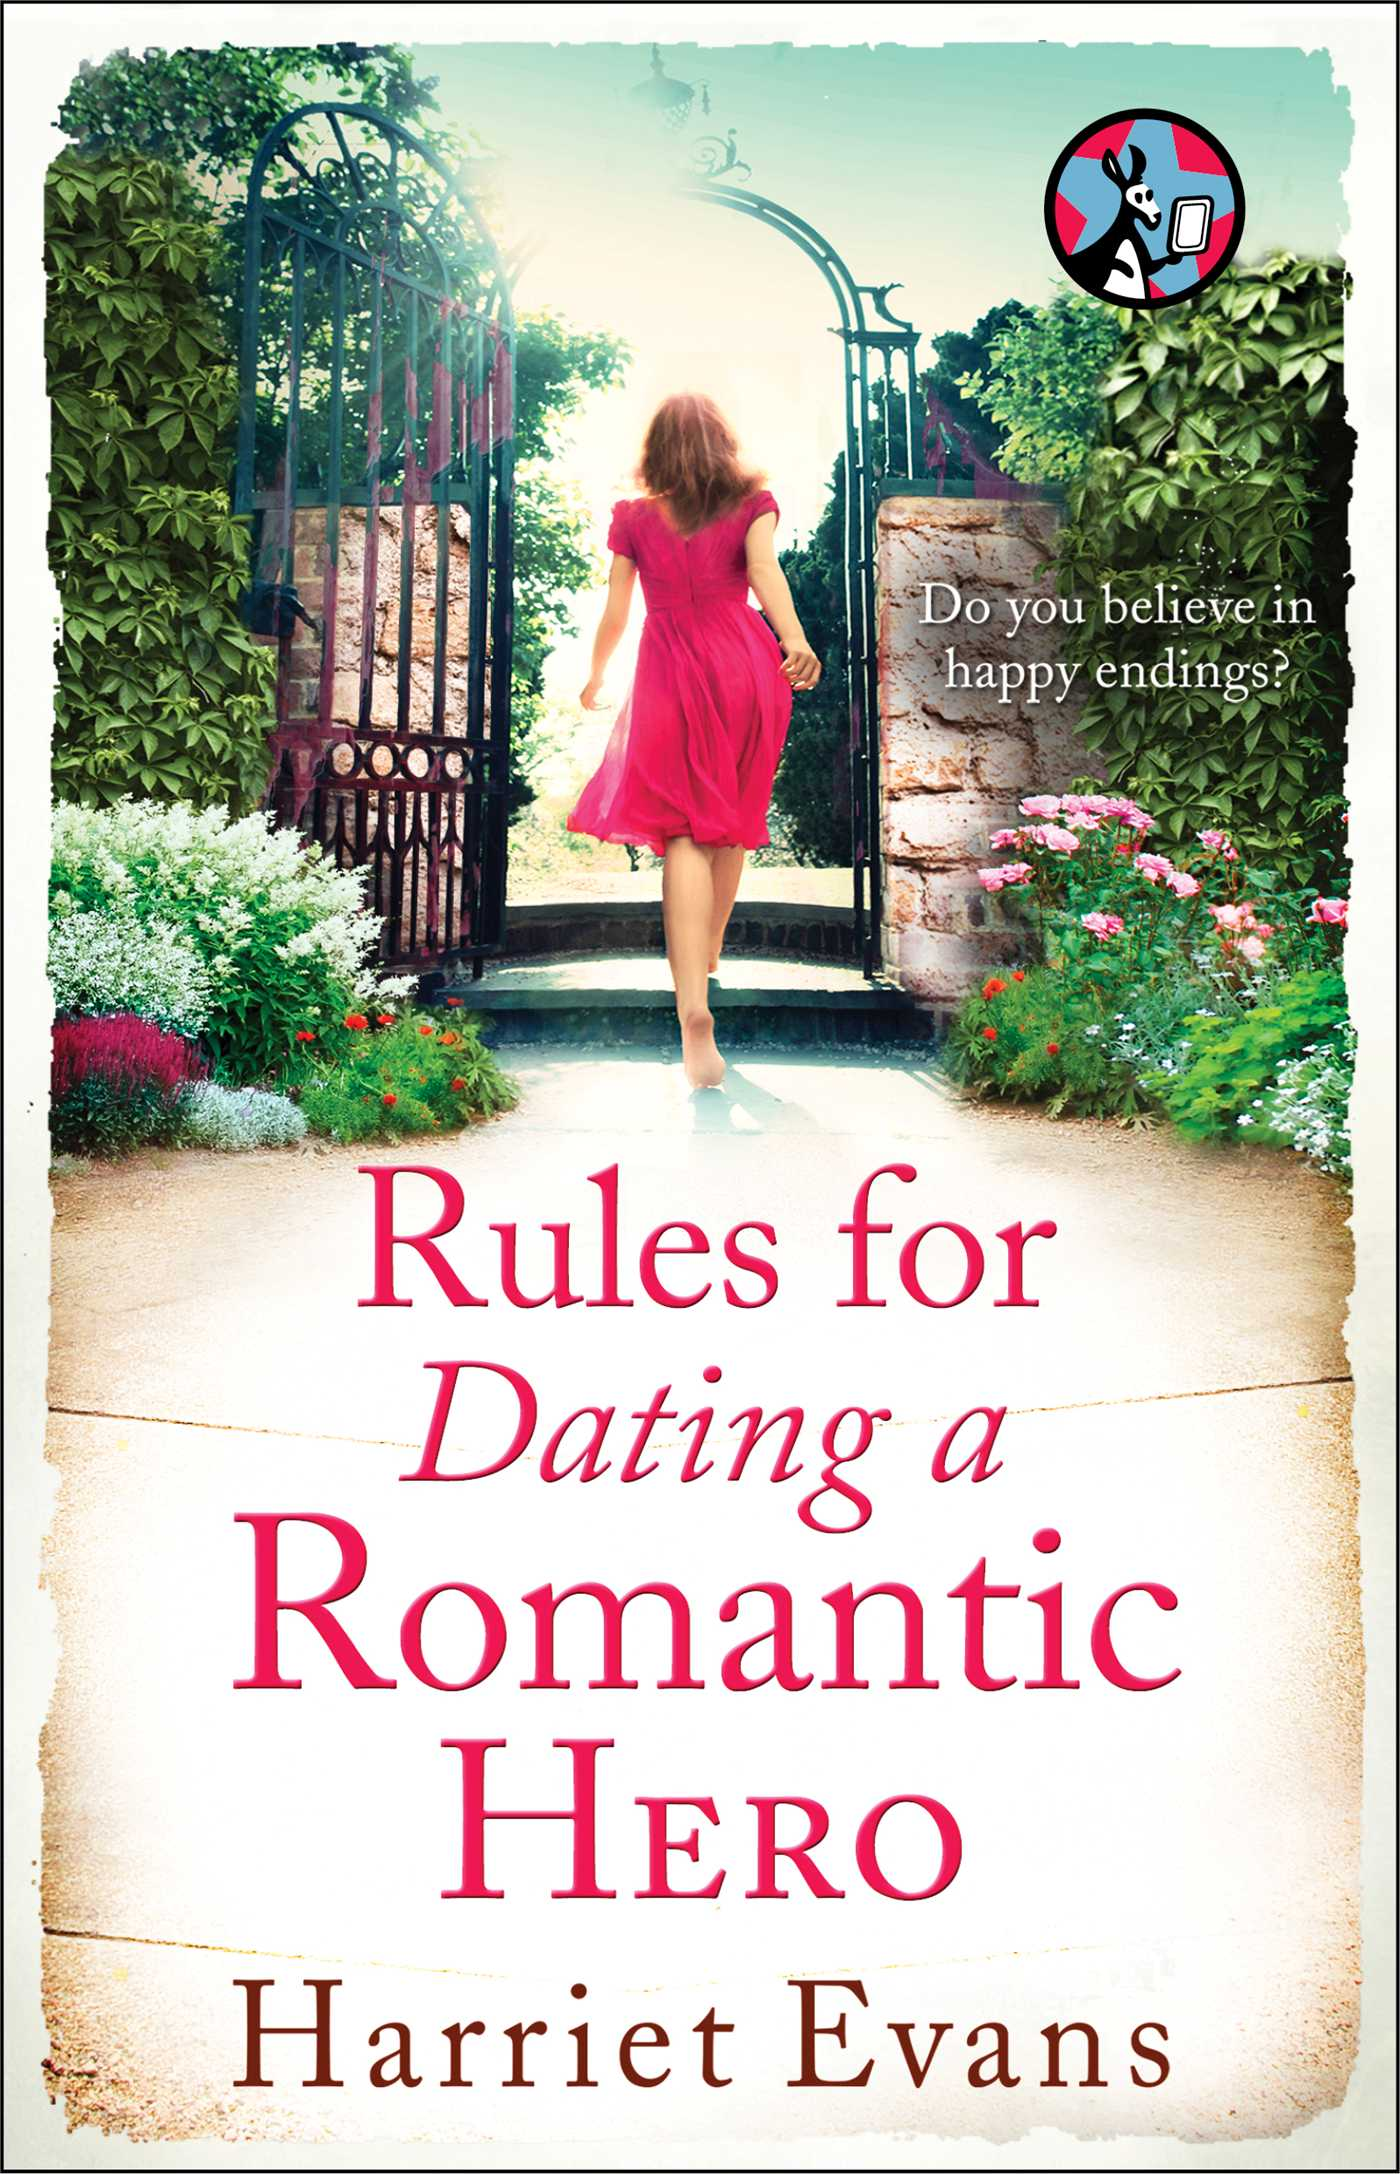 Rules-for-dating-a-romantic-hero-9781476766188_hr